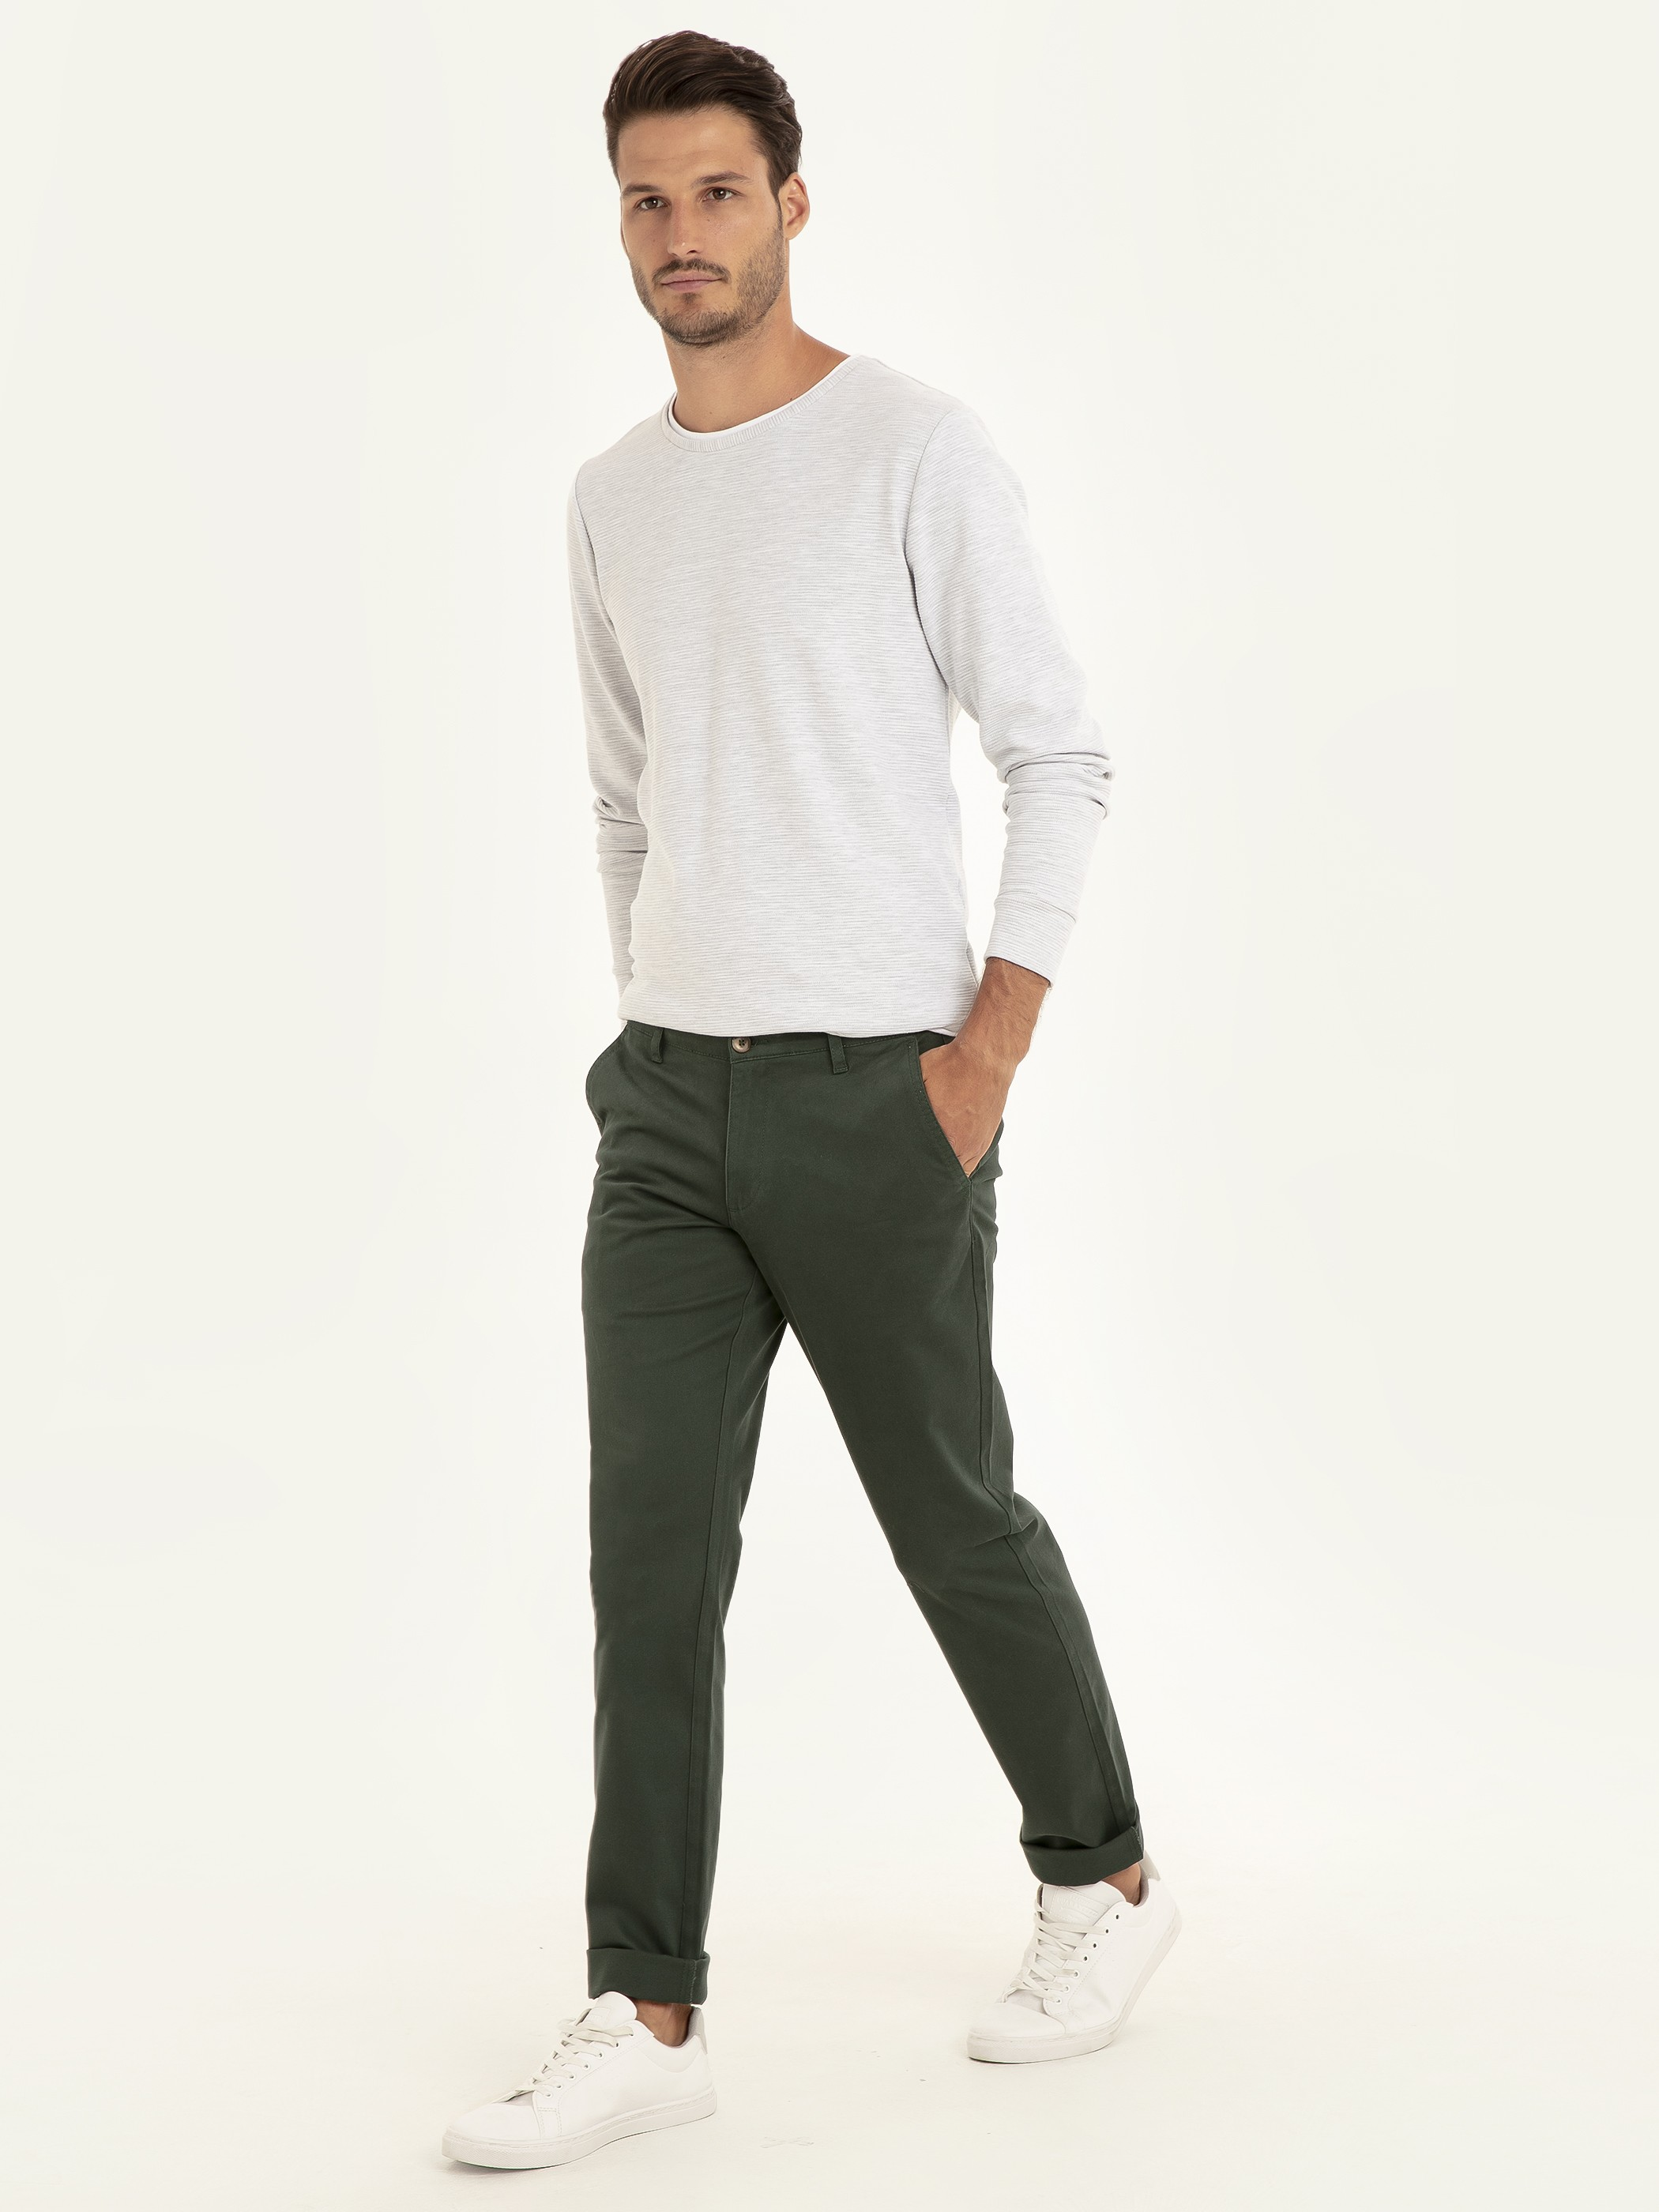 GREEN - Chino Trousers - 9W1023Z8